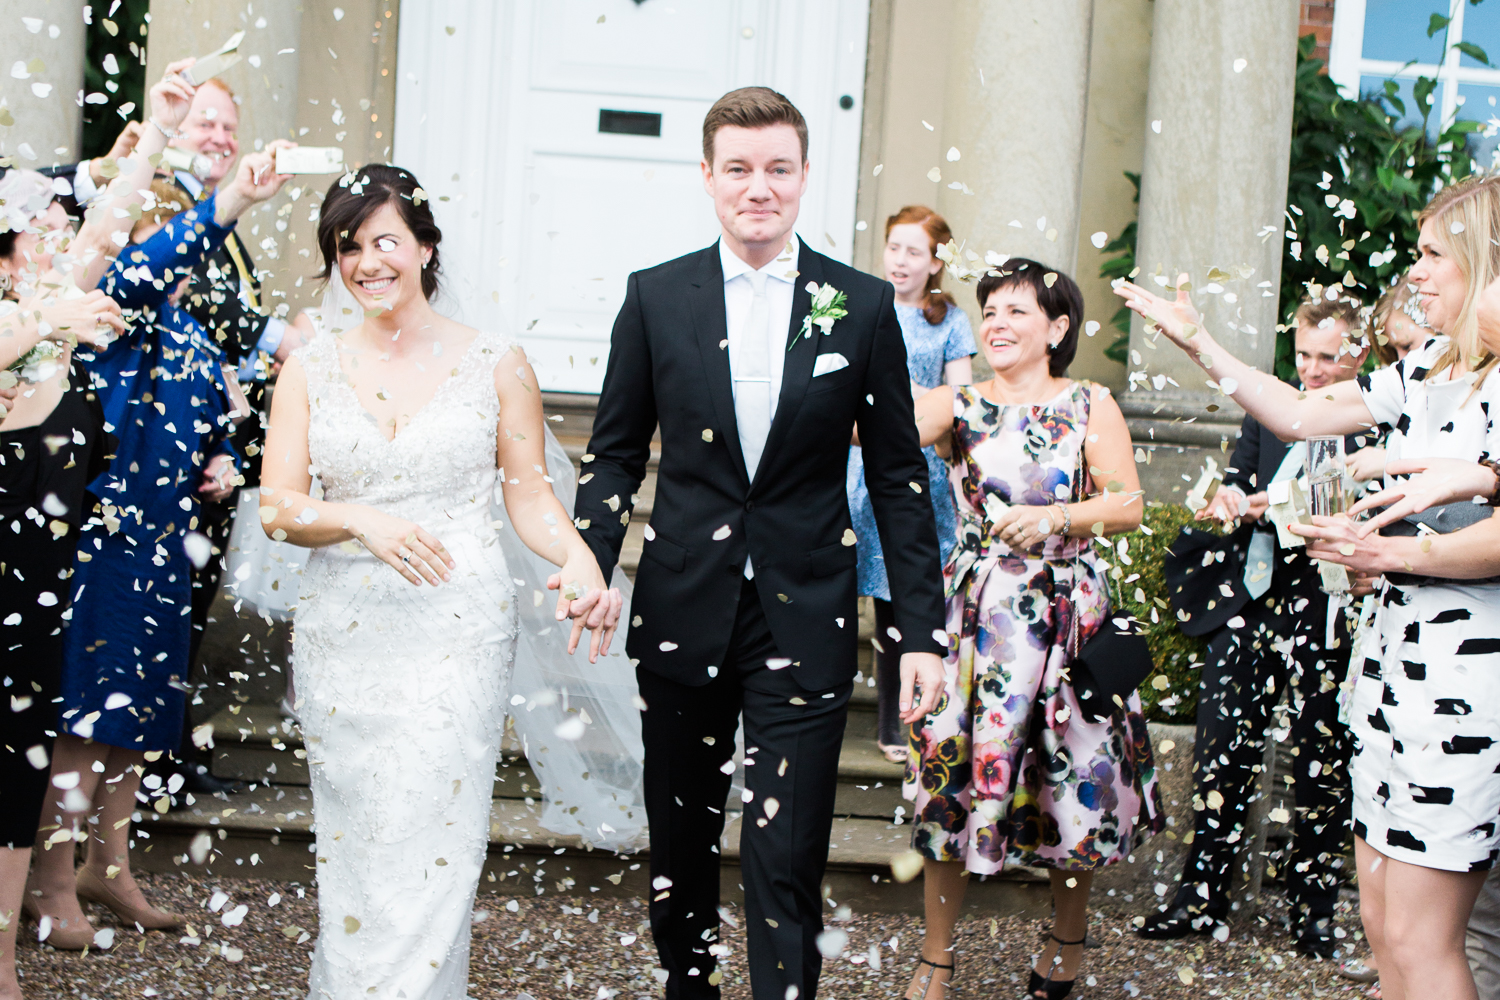 Confetti shot at wedding at Iscoyd Park at front of house photo